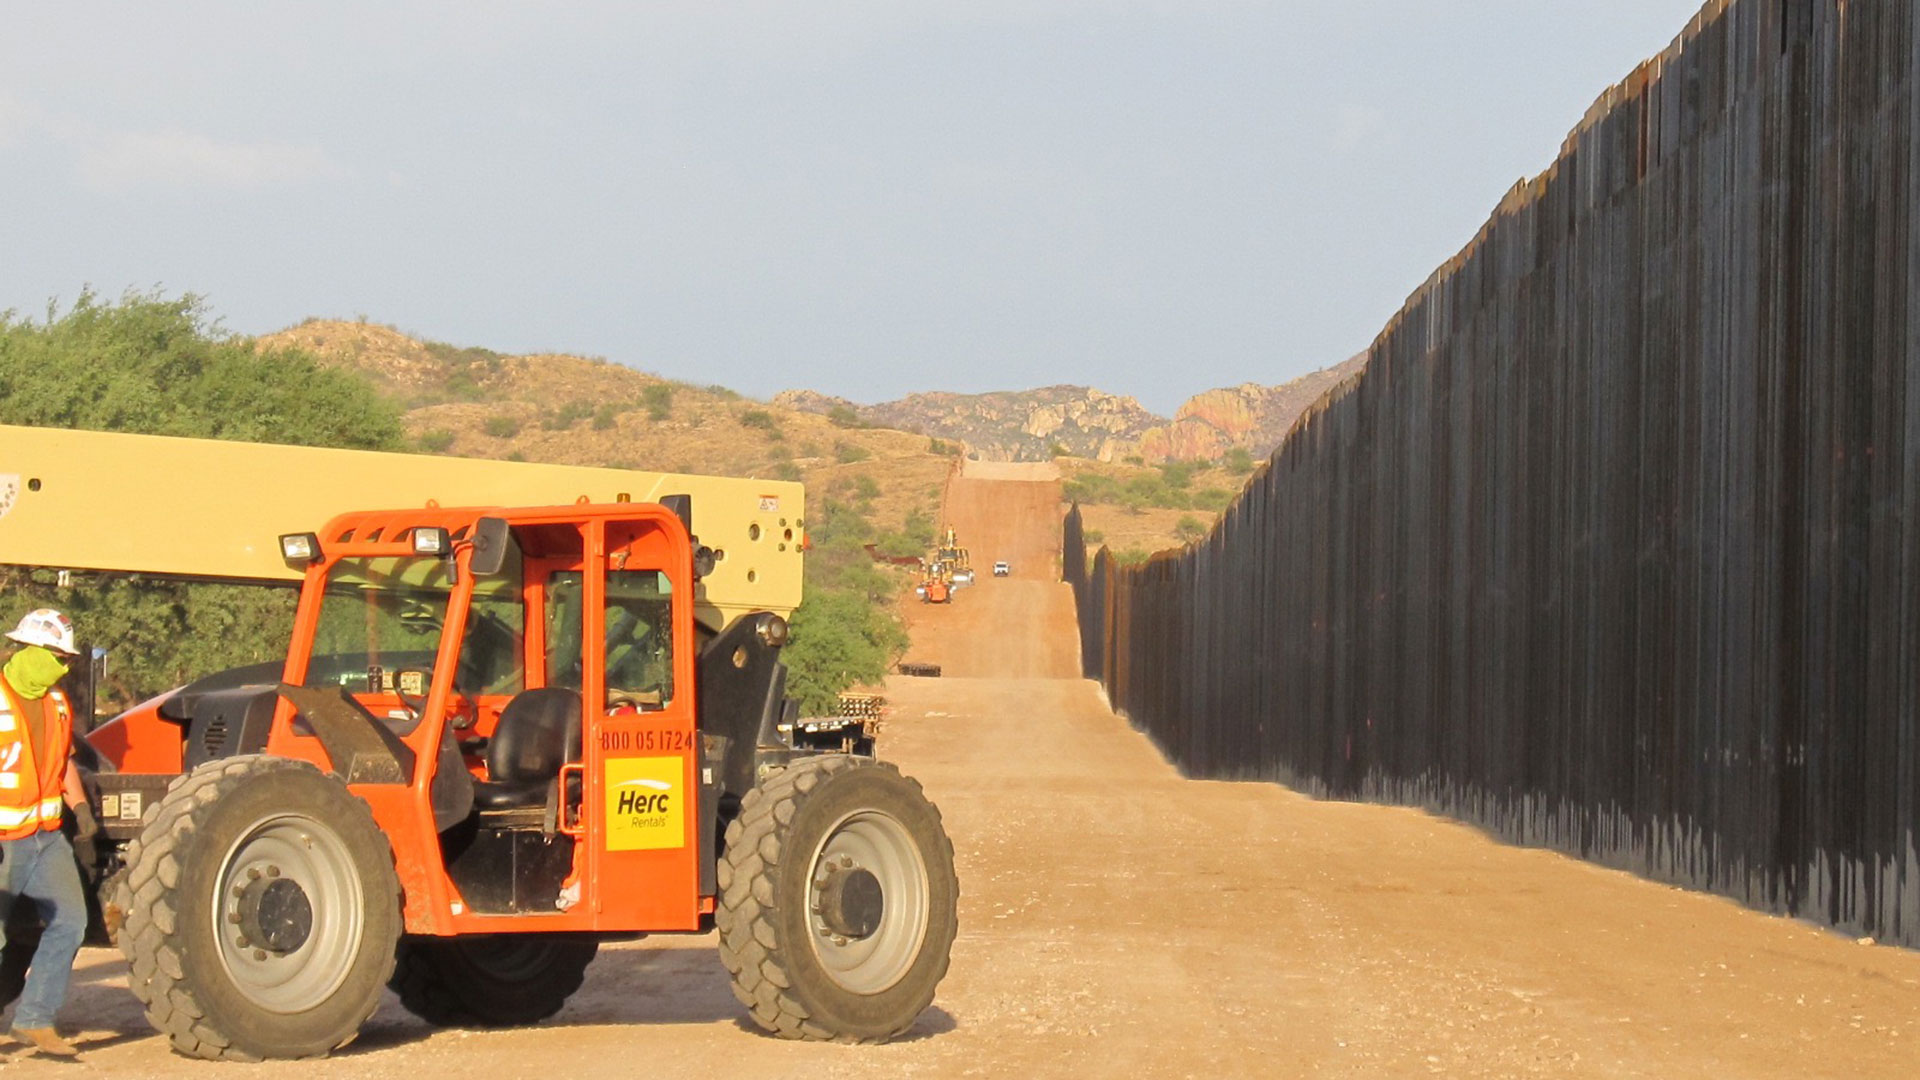 Construction of 30-foot high steel bollard wall on or near the Buenos Aires National Wildlife Refuge near Arivaca in July 2020.